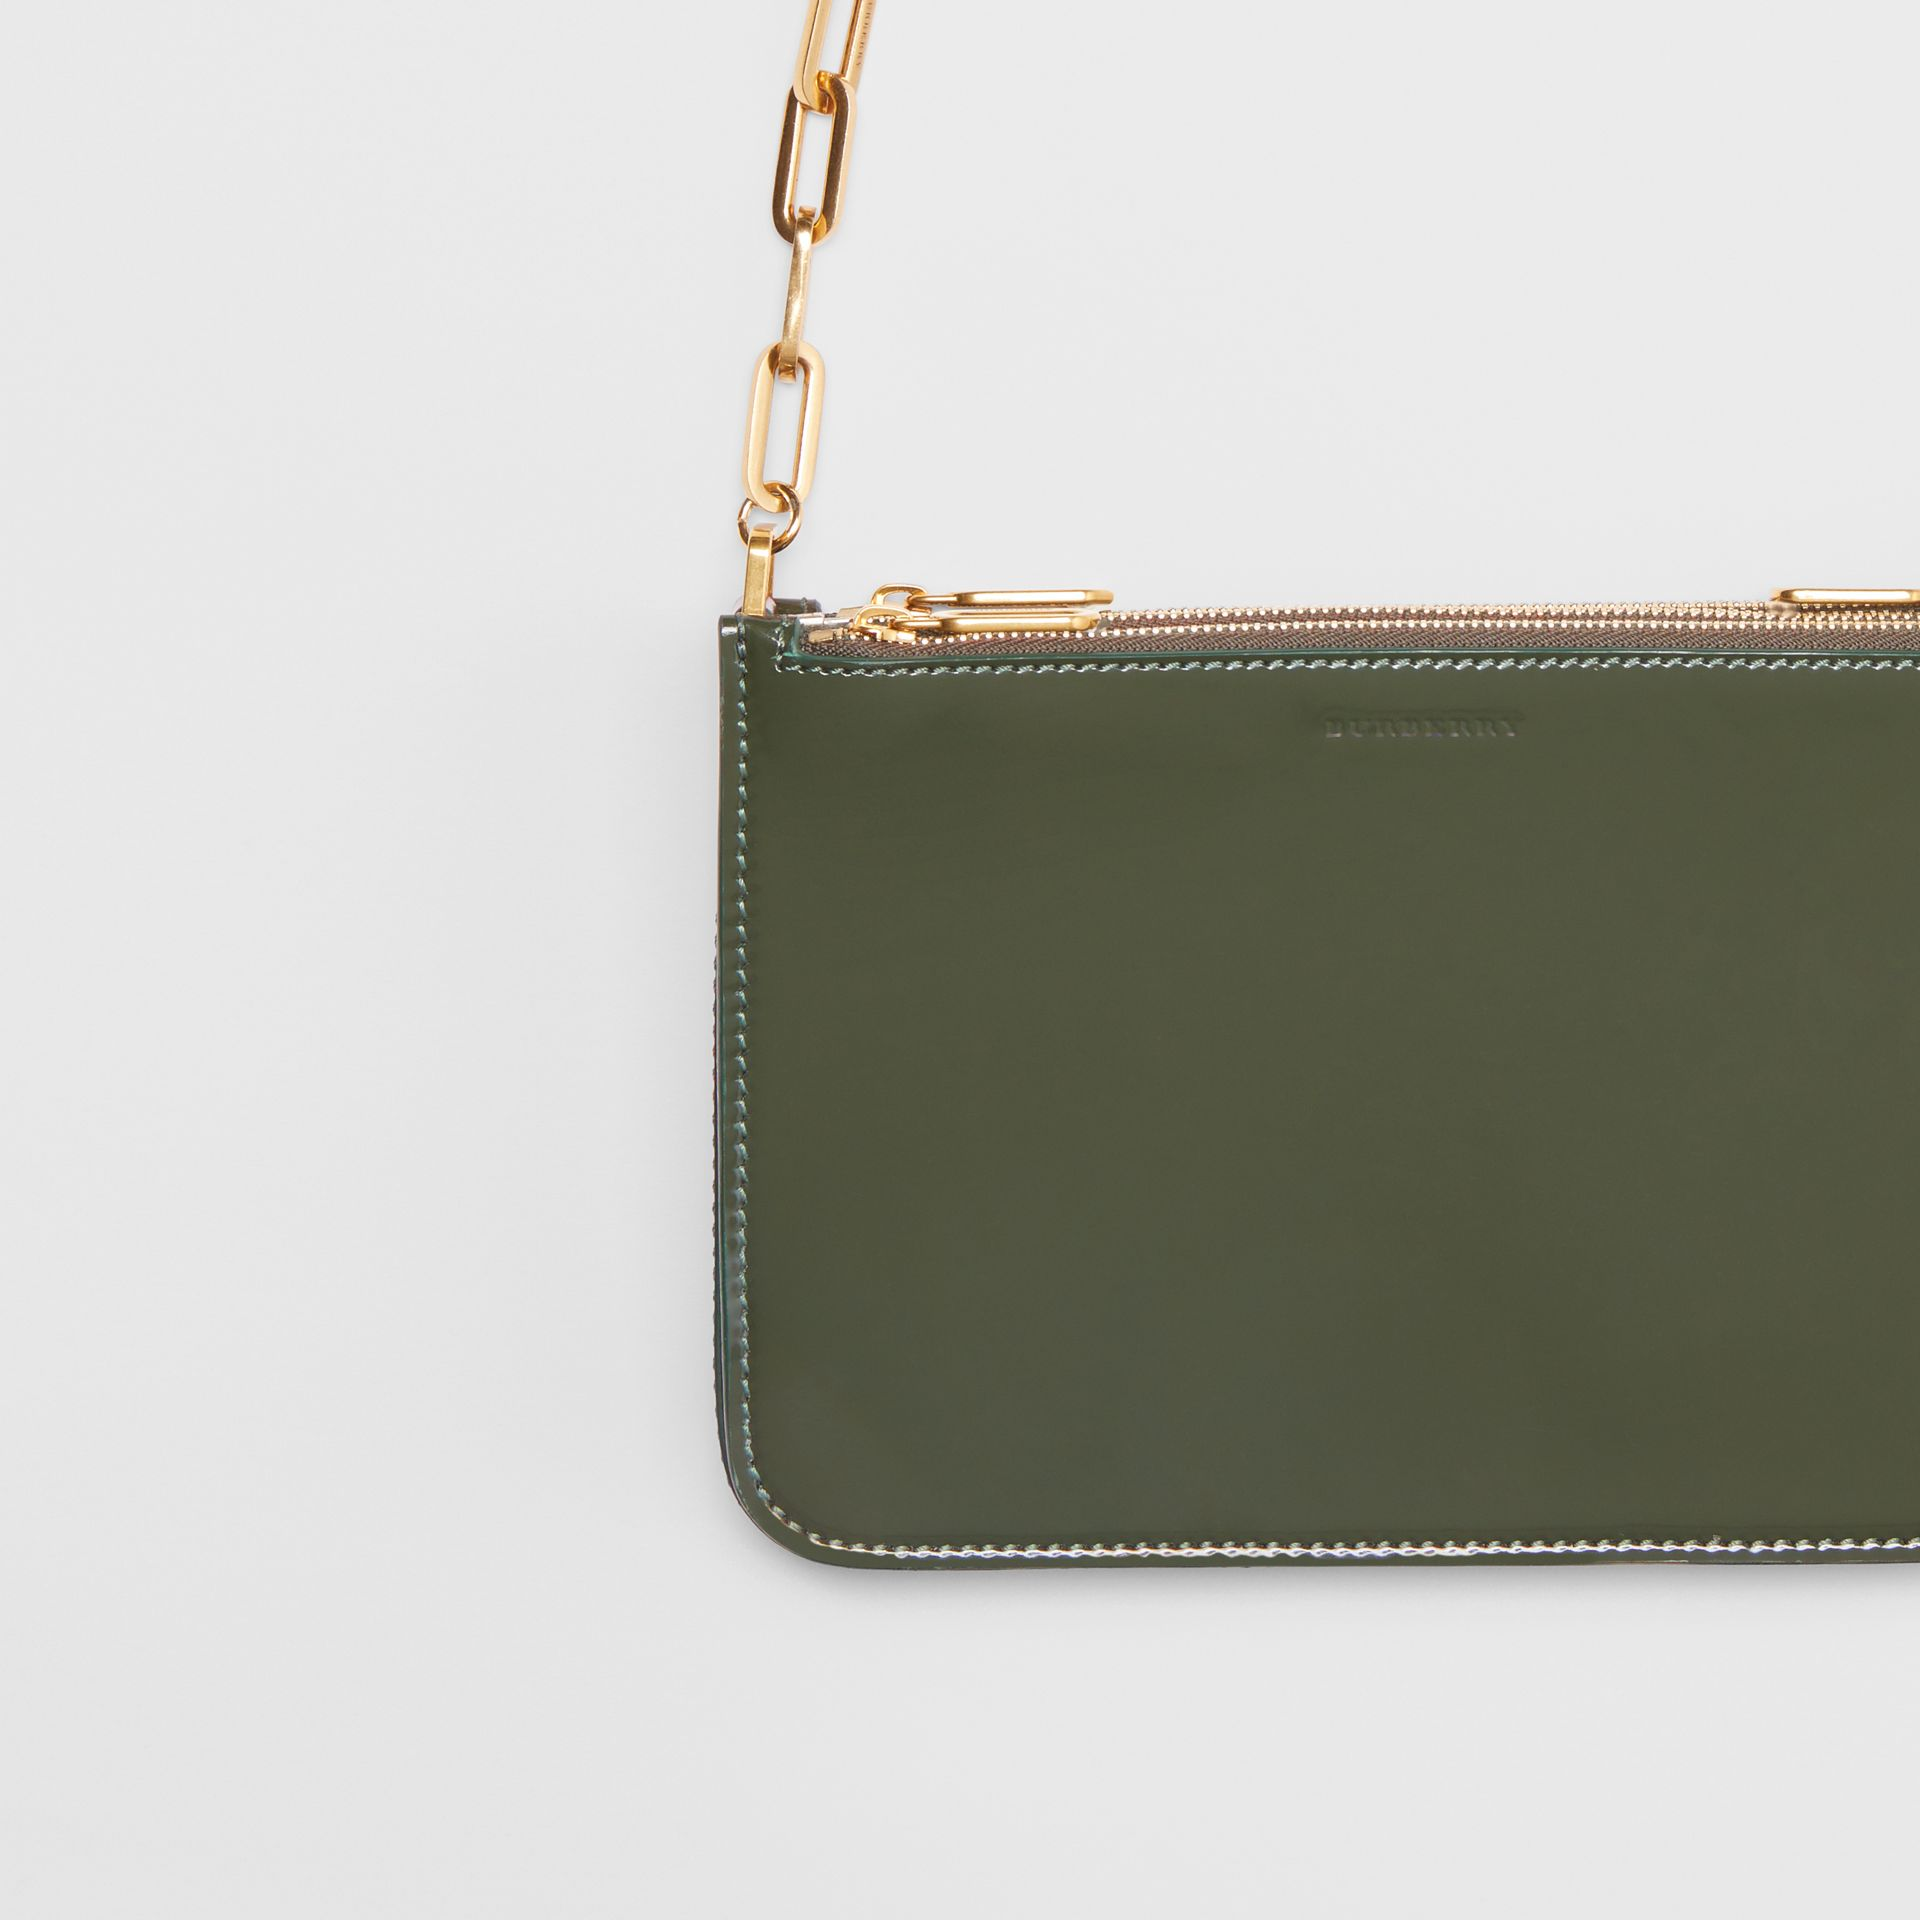 Triple Zip Patent Leather Crossbody Bag in Dark Forest Green - Women | Burberry United States - gallery image 1